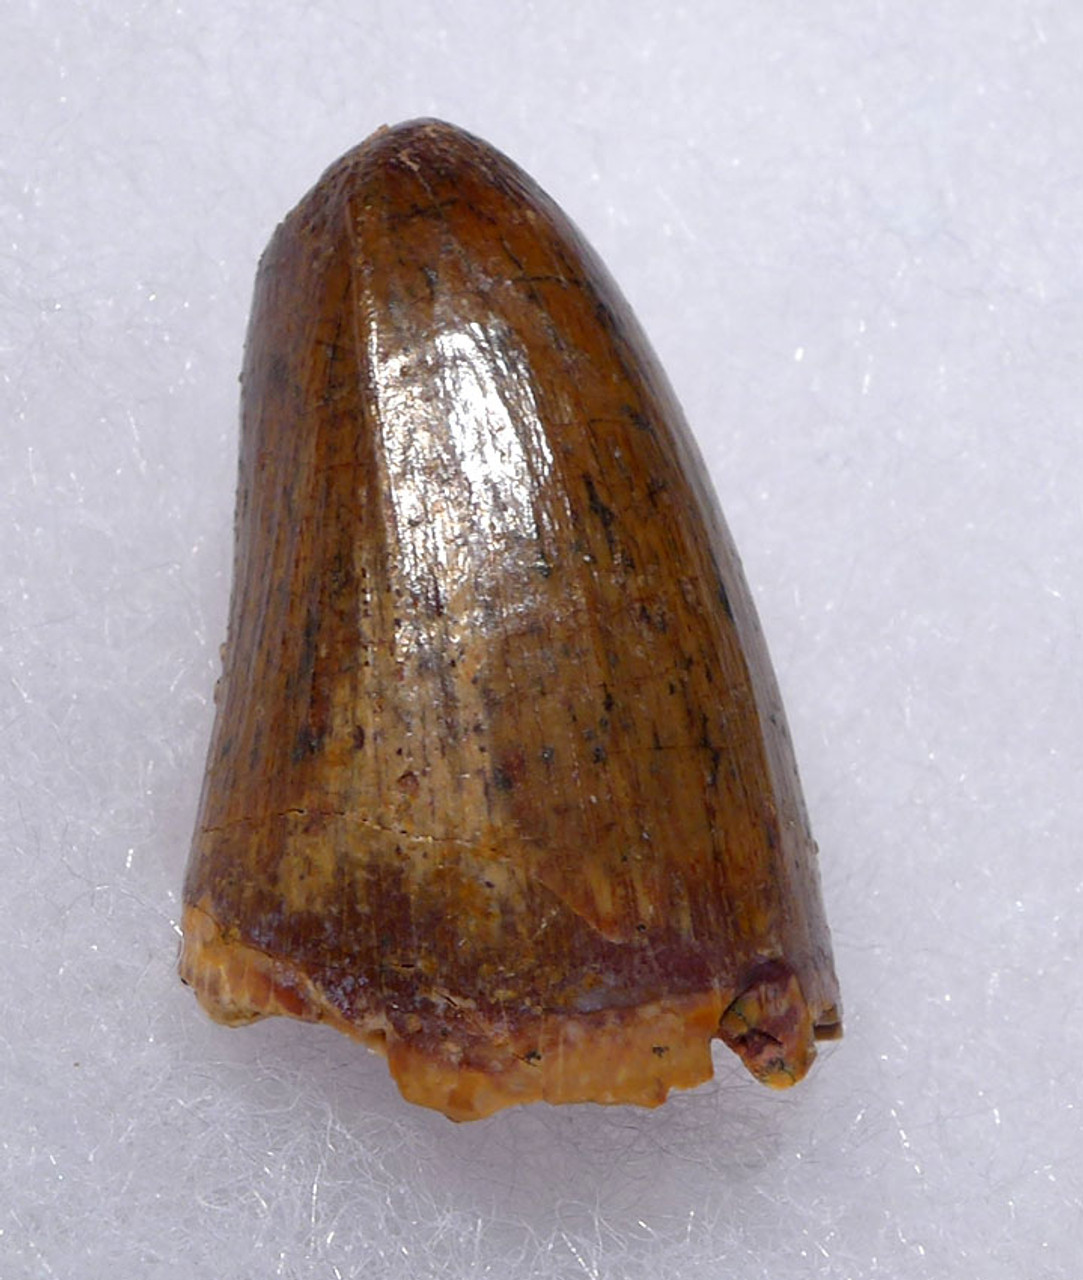 CROC063 - FINEST QUALITY FOSSIL CROCODILE TOOTH FROM THE CRETACEOUS DINOSAUR-ERA